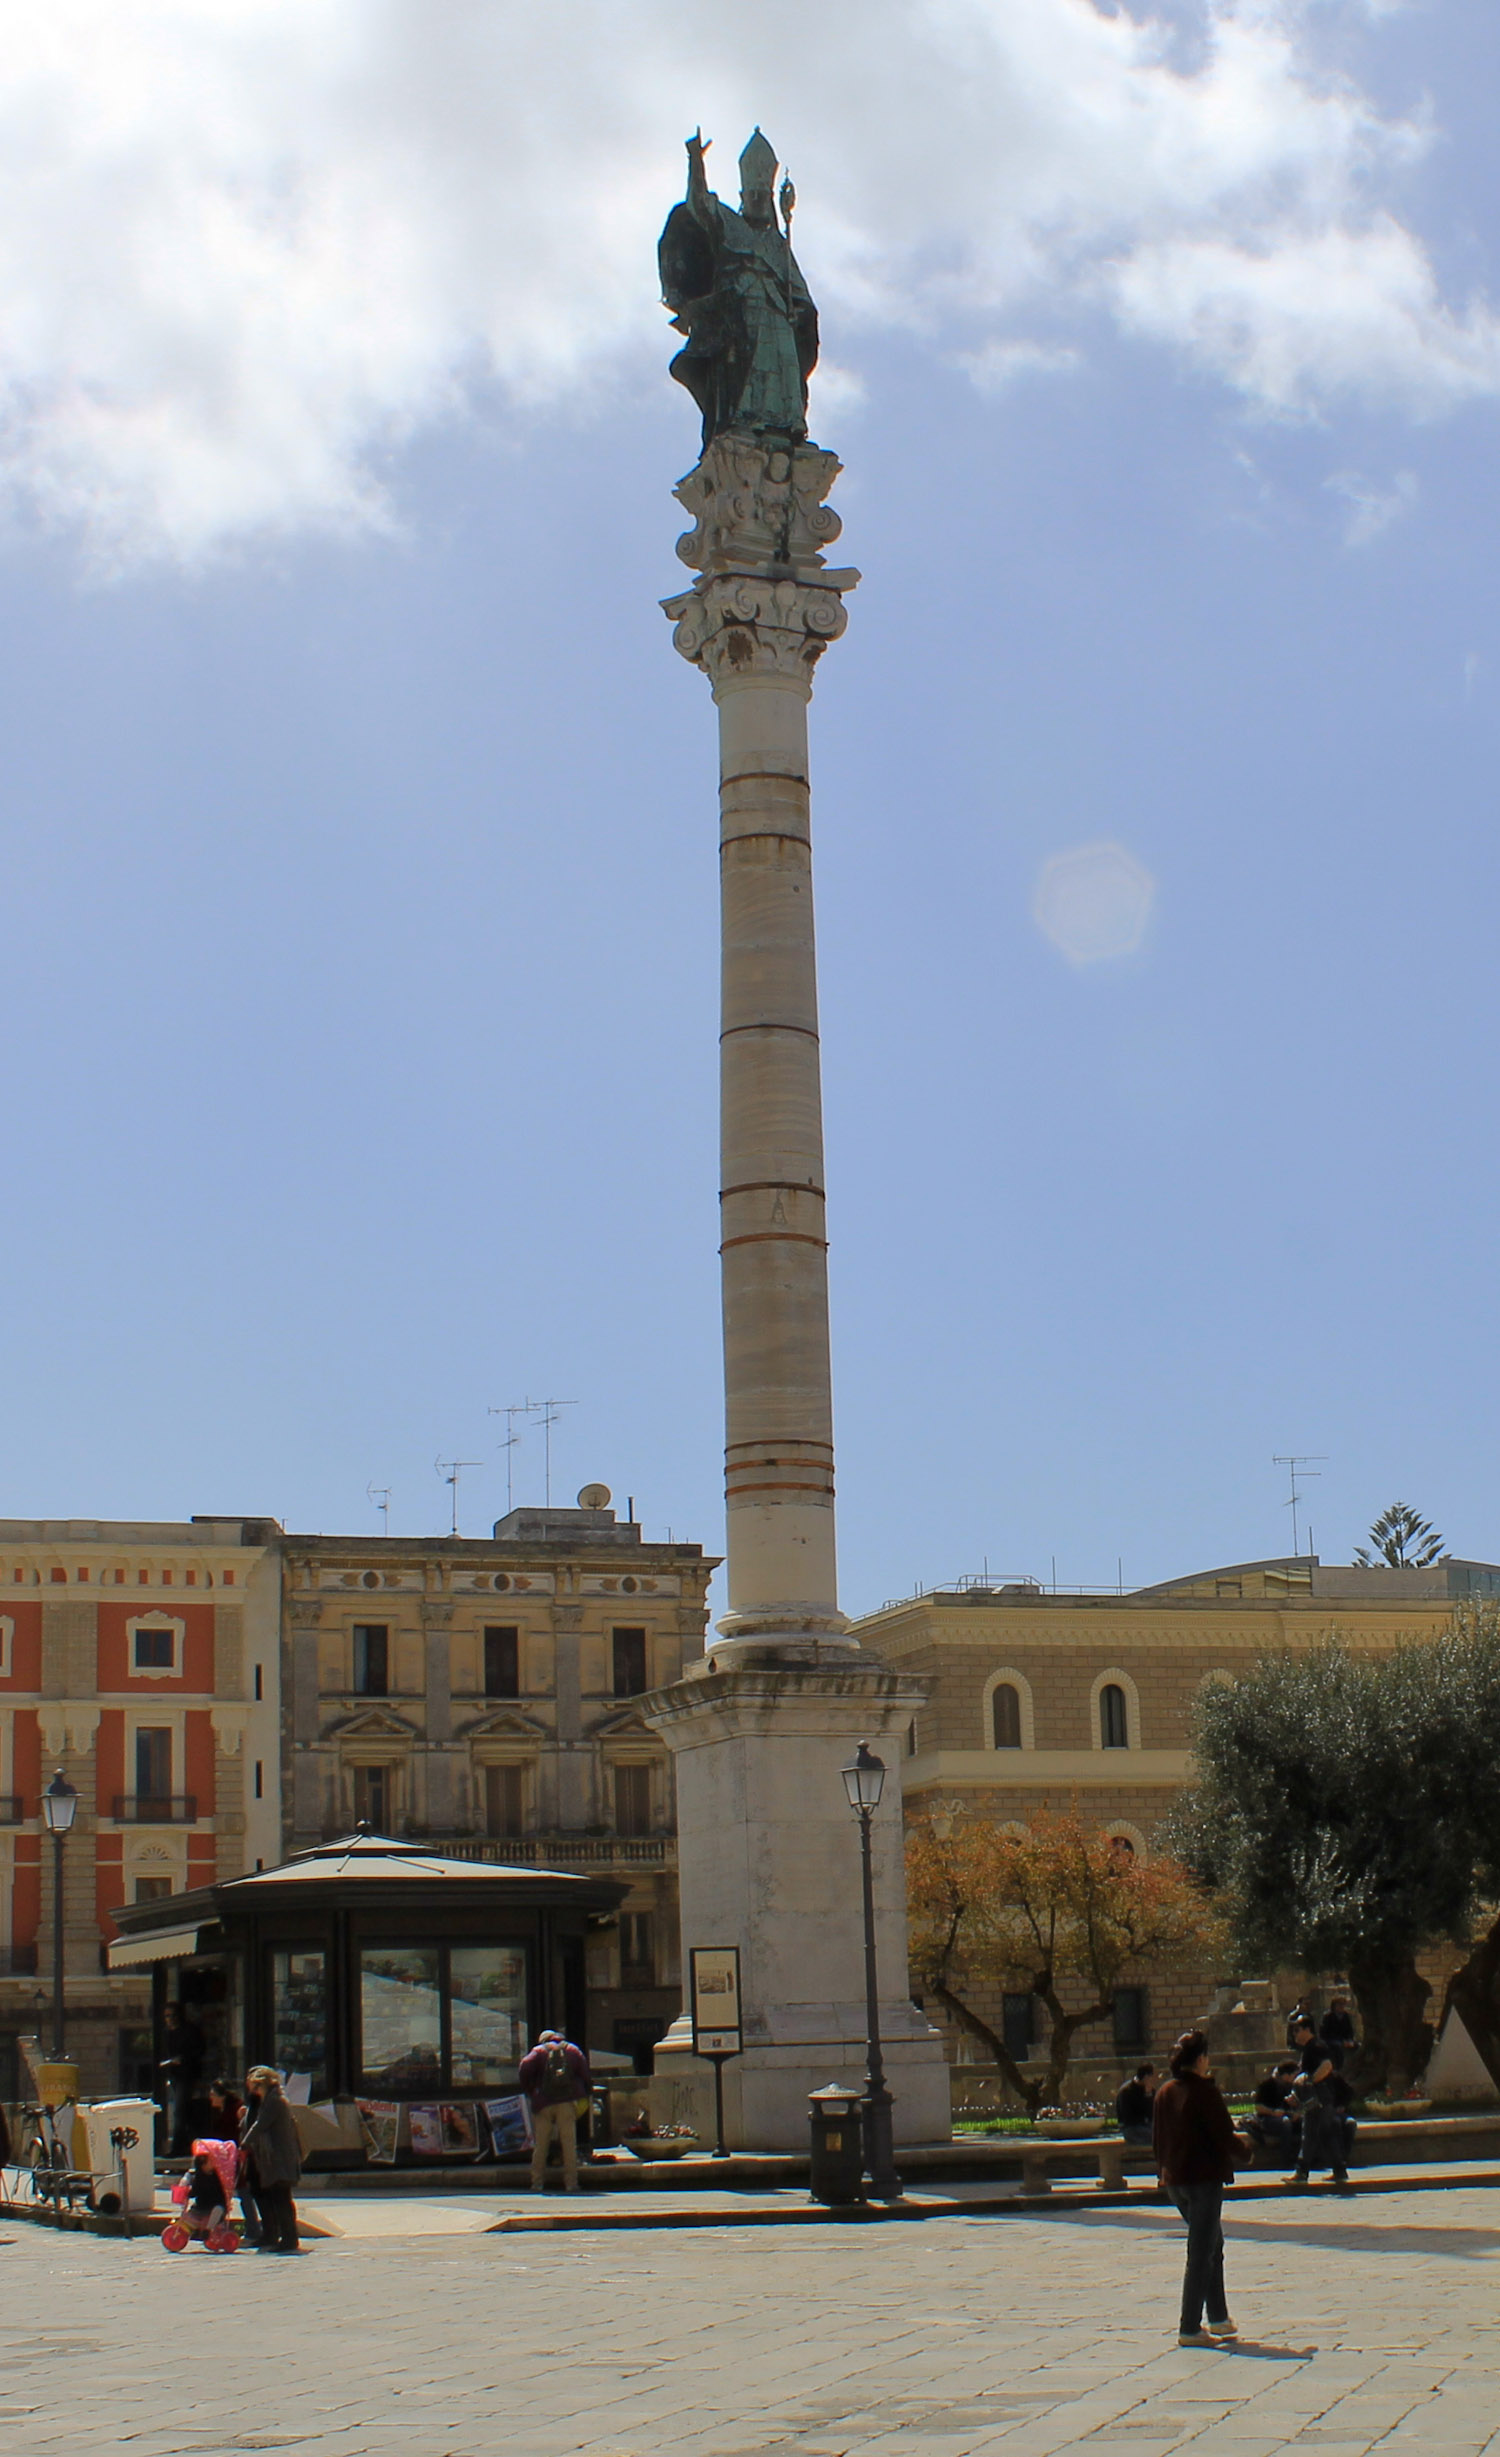 The Lecce column that used to mark the end of the Appian Way in Brindisi